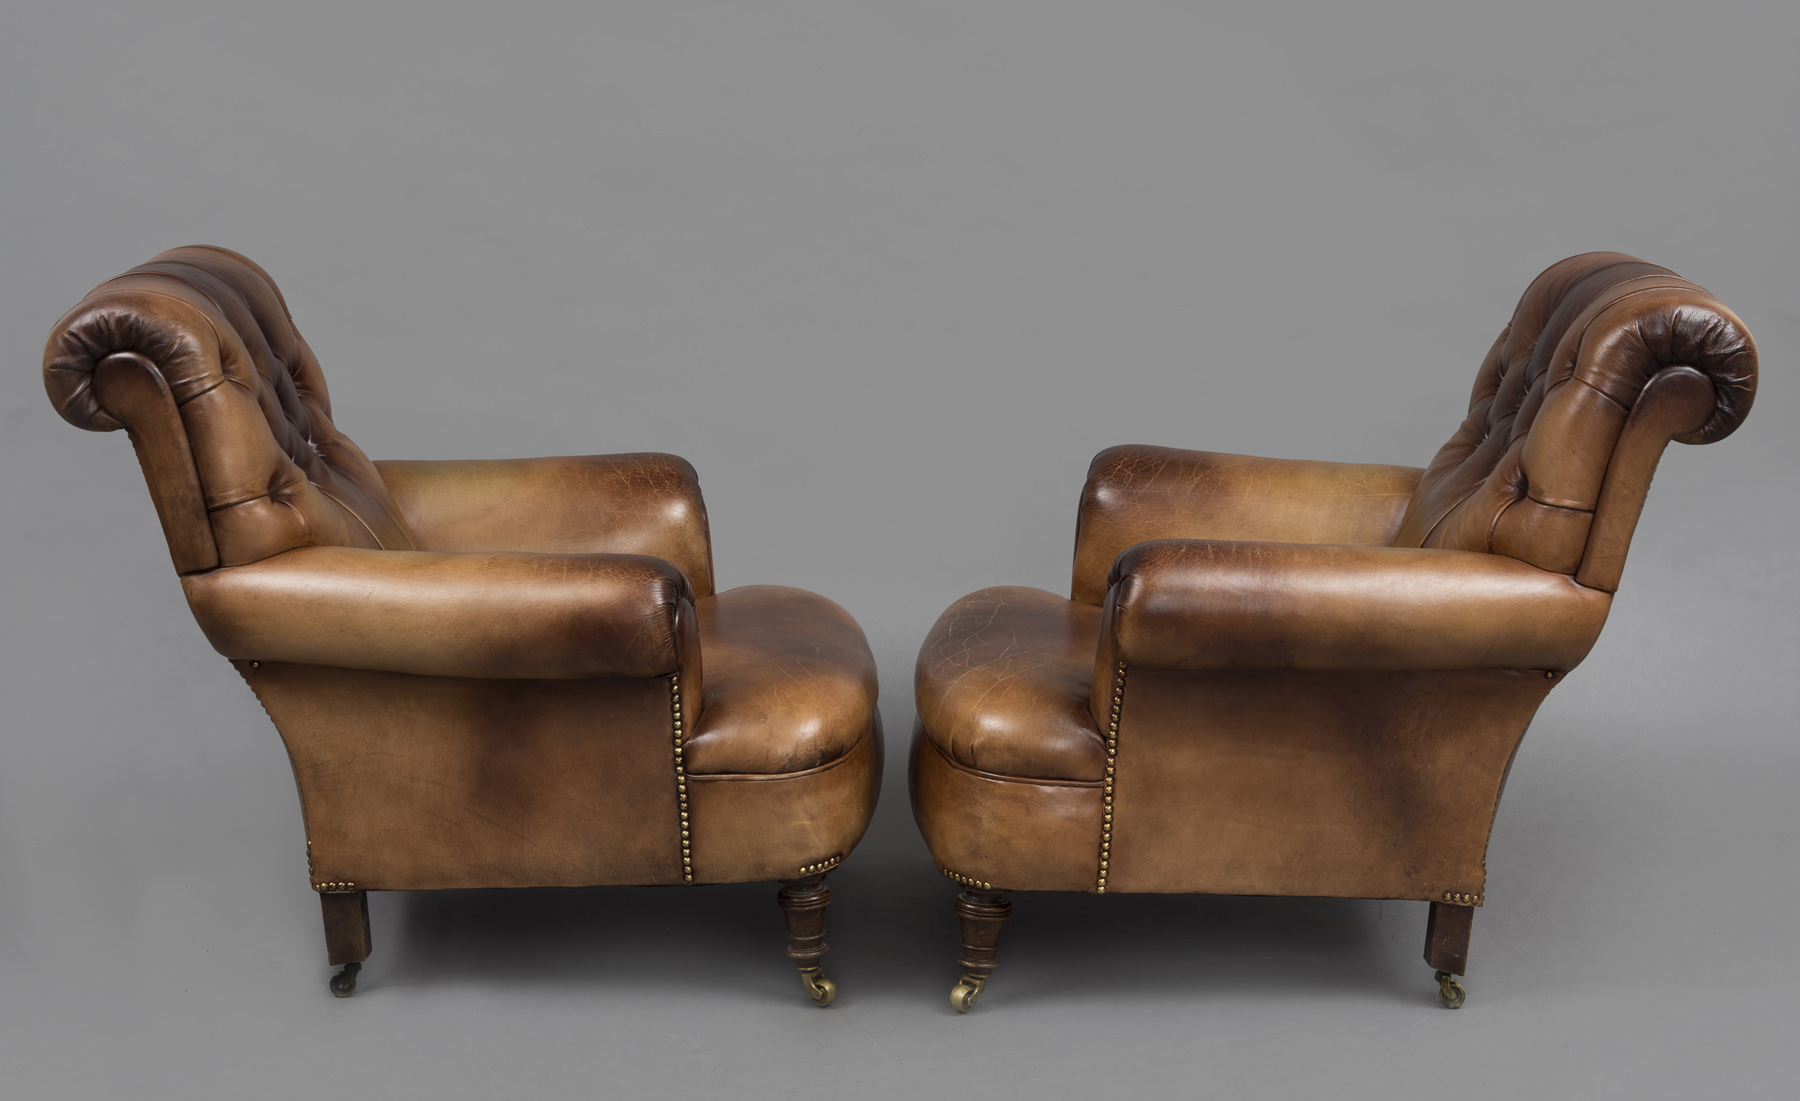 Sofa Cognac » Product » Antique English Pair Leather Club Chairs